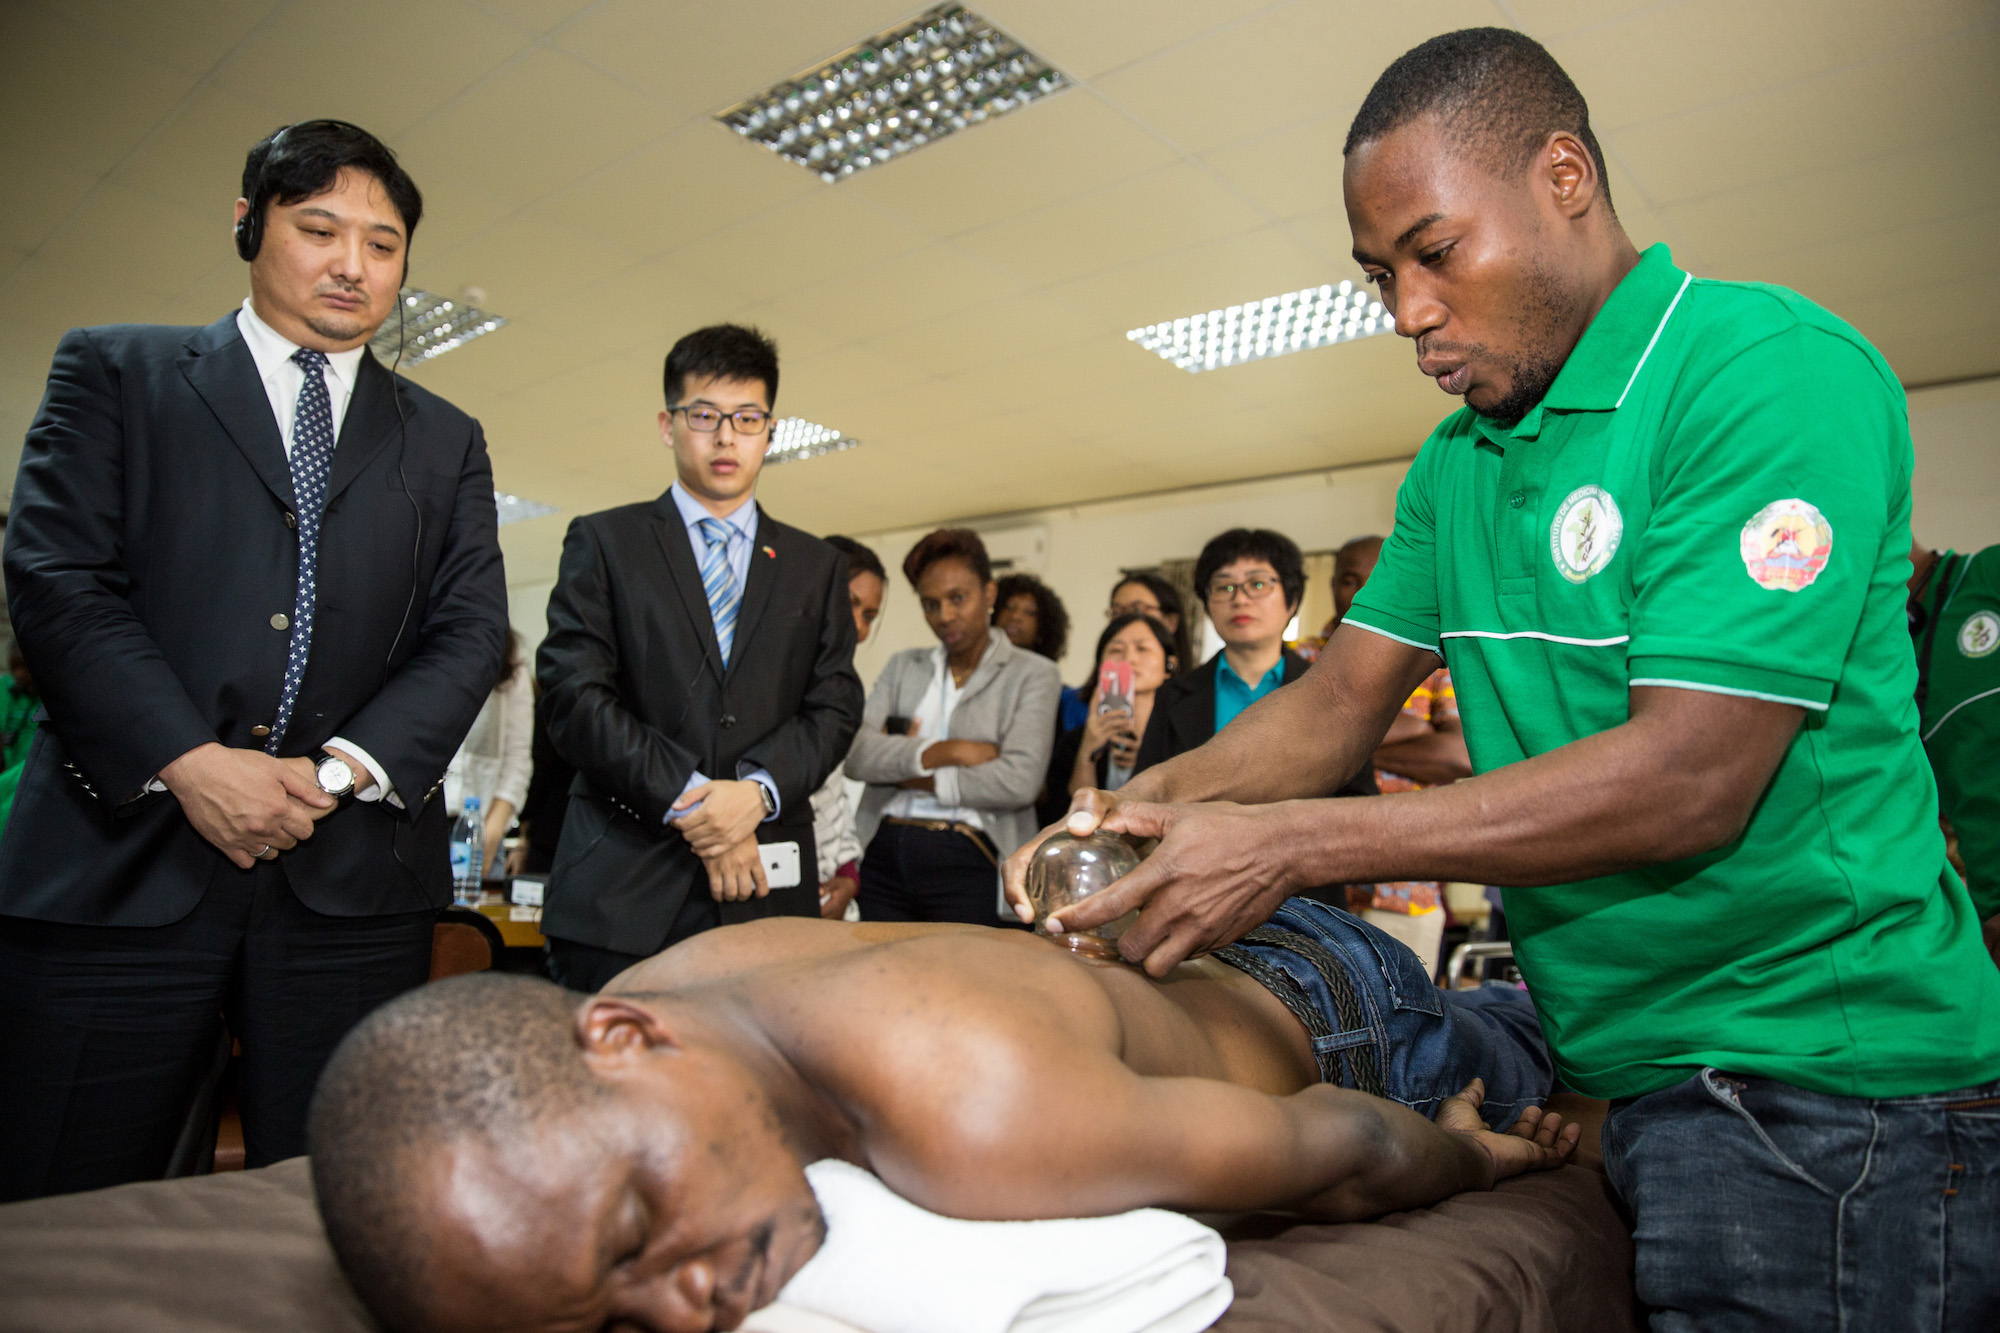 Mozambique student learning cupping during a TCM training course